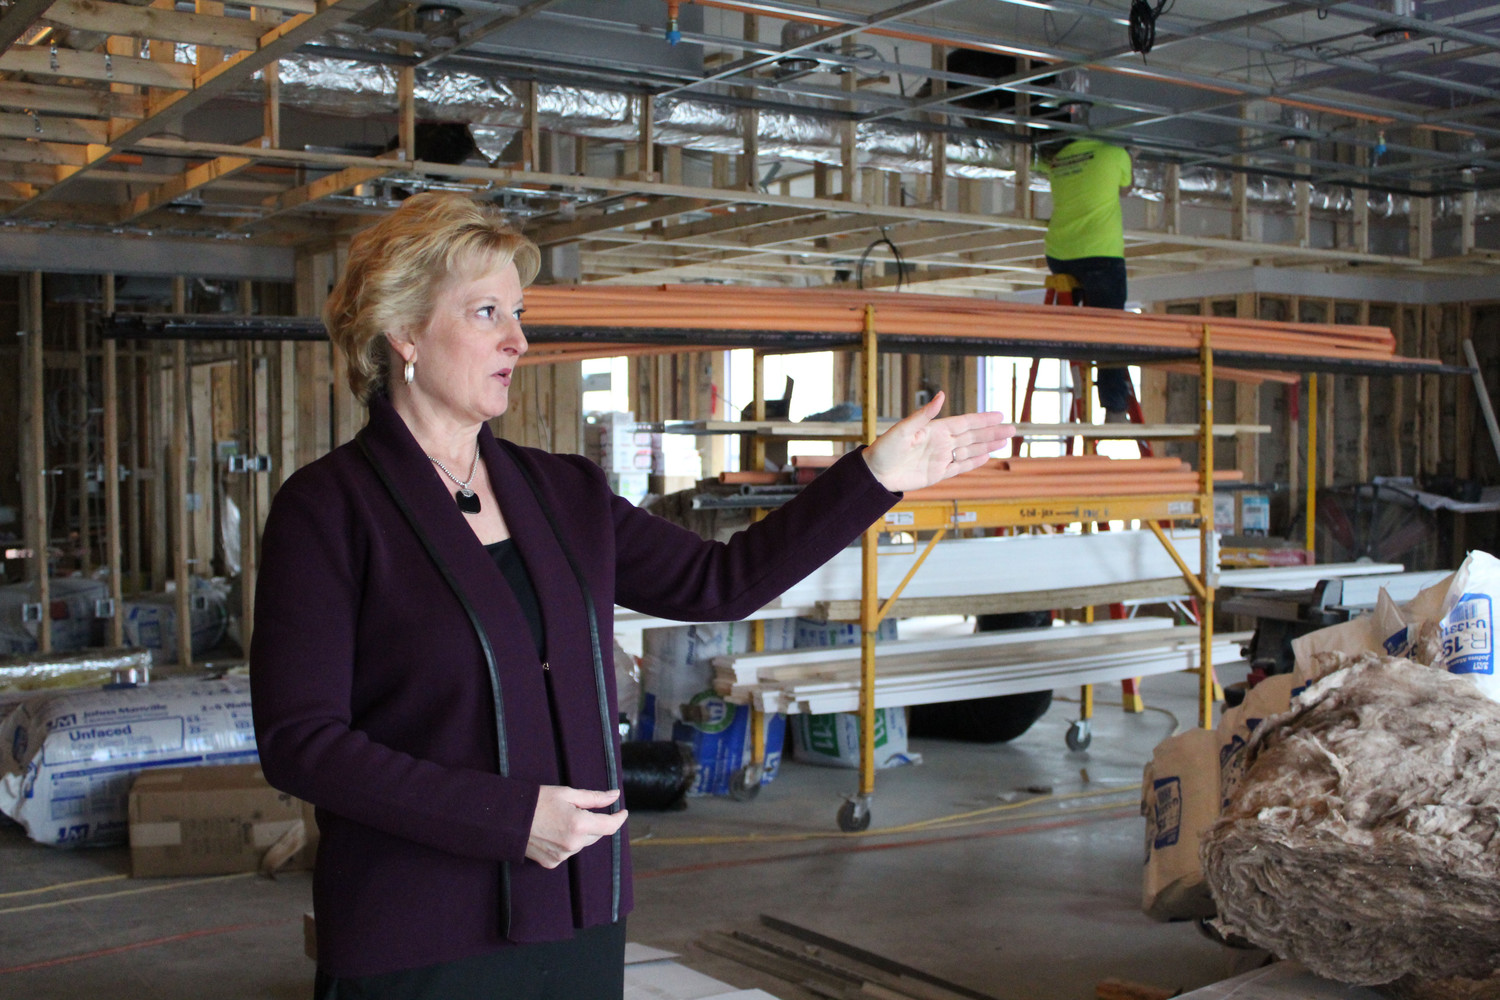 Janice Murray, director of operations of Restin Hospitality LLC, the company that owns the Comfort Inn & Suites, points out the future lobby fireplace while work continues behind her during a tour Feb. 12.